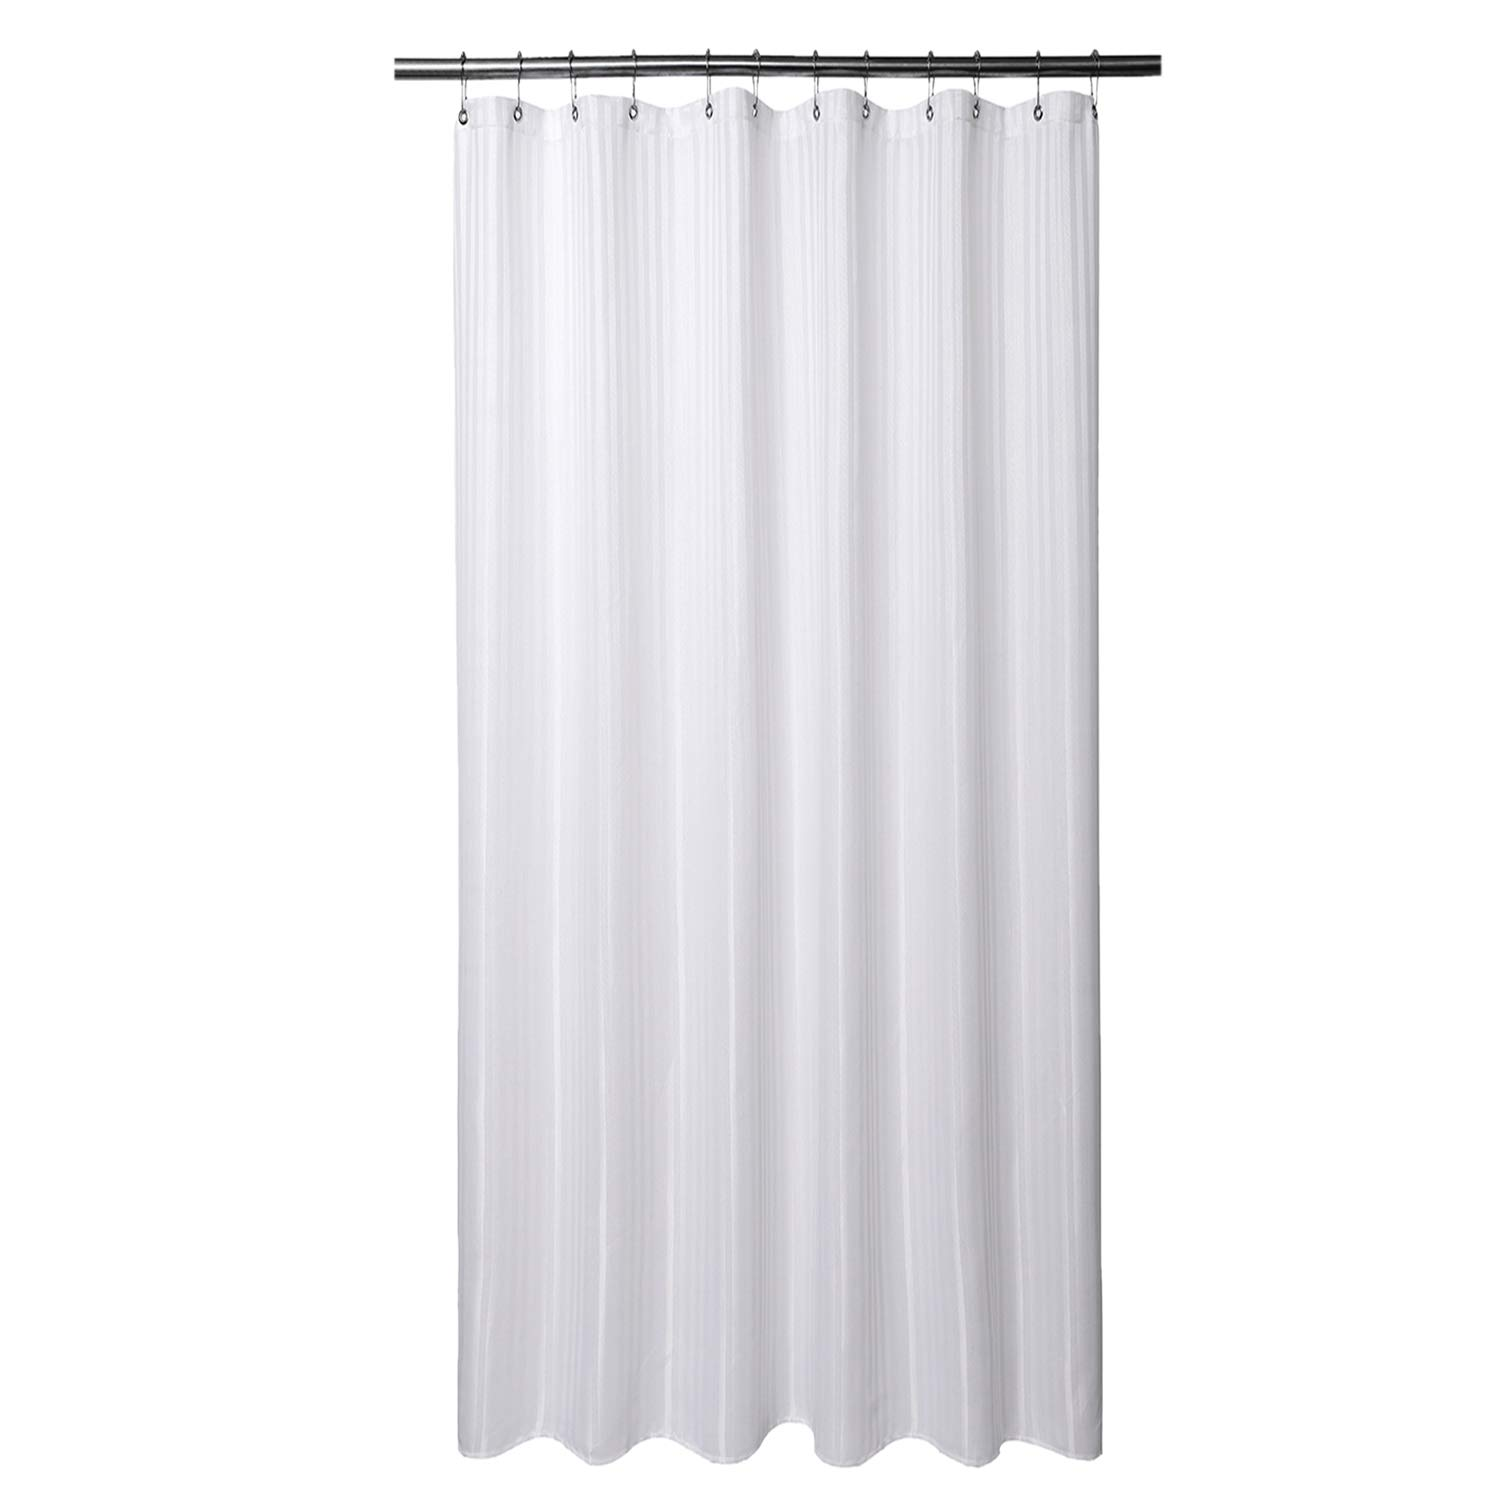 Barossa Design Extra Long Fabric Shower Curtain With 96 Inch Height